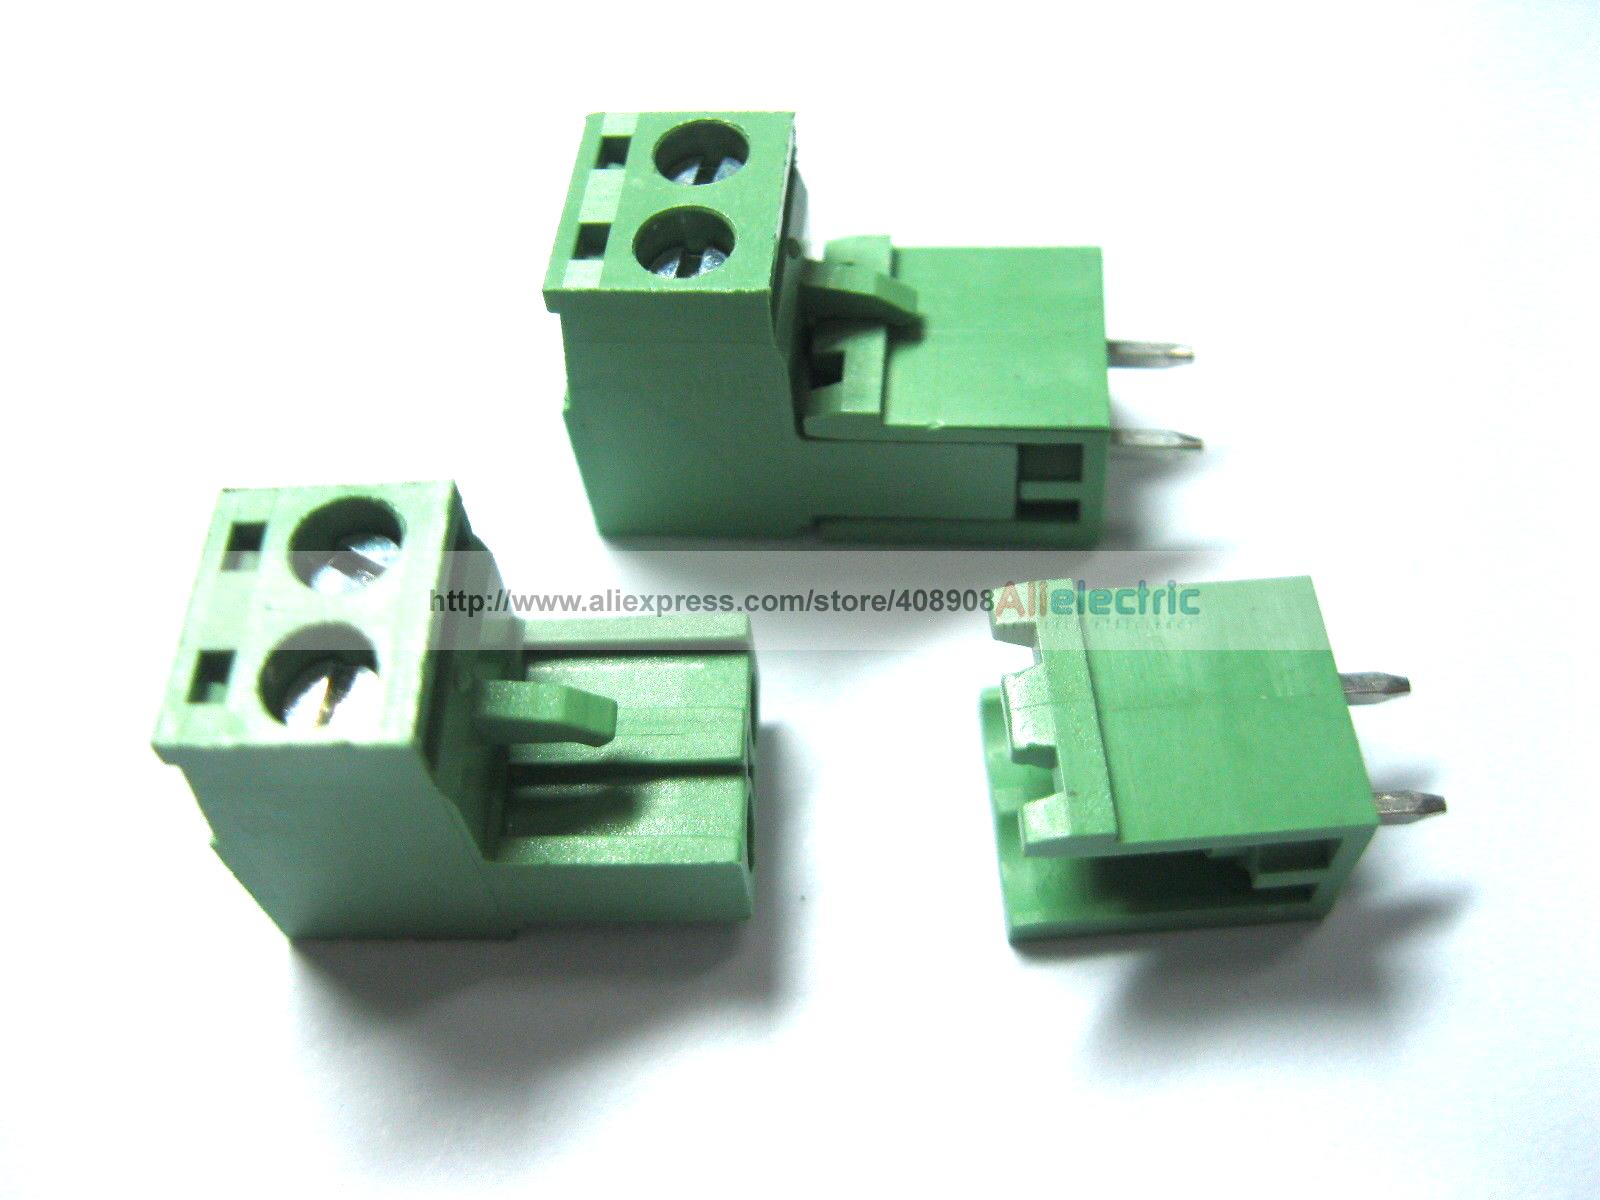 100 Pcs Green 2pin 5.08mm Screw Terminal Block Connector <br>